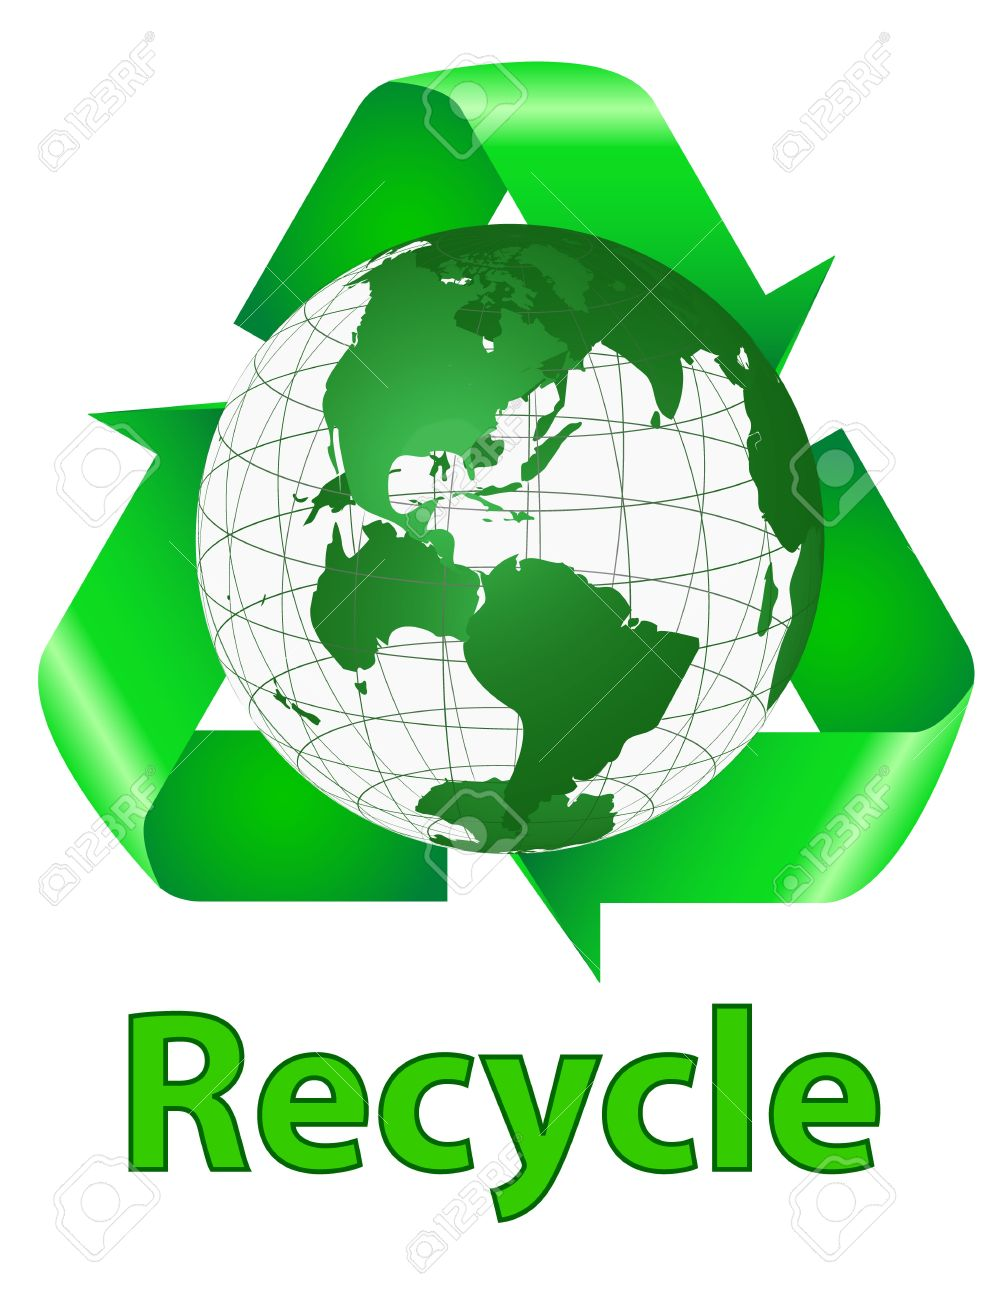 Recycle symbol behind the earth with words recycle royalty free recycle symbol behind the earth with words recycle stock vector 20075137 biocorpaavc